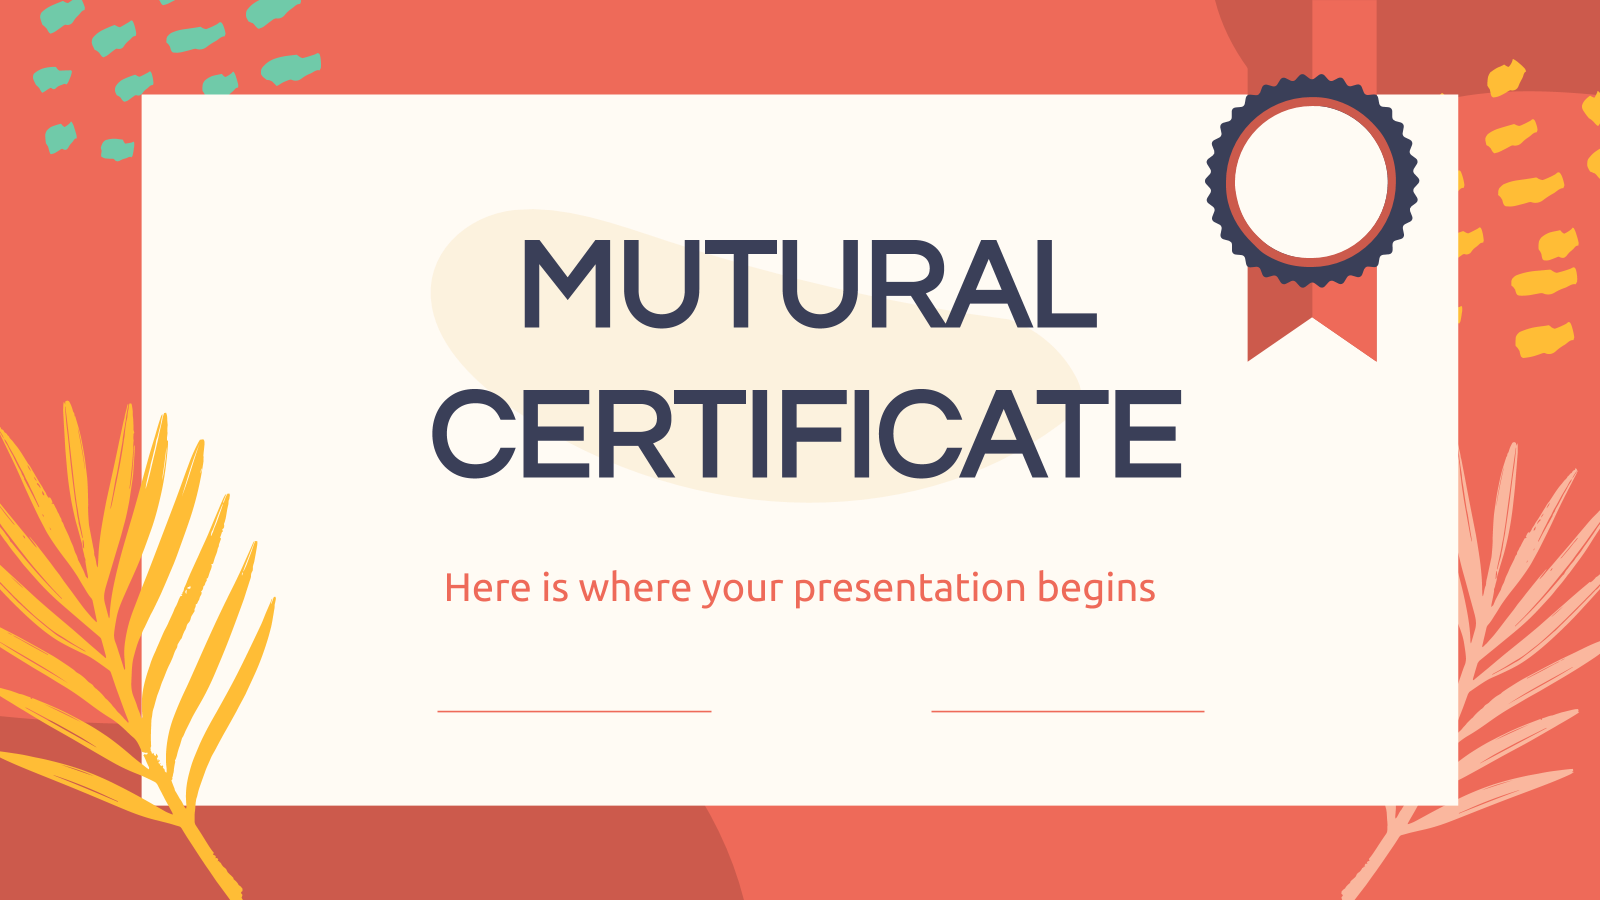 Mutural Certificate presentation template